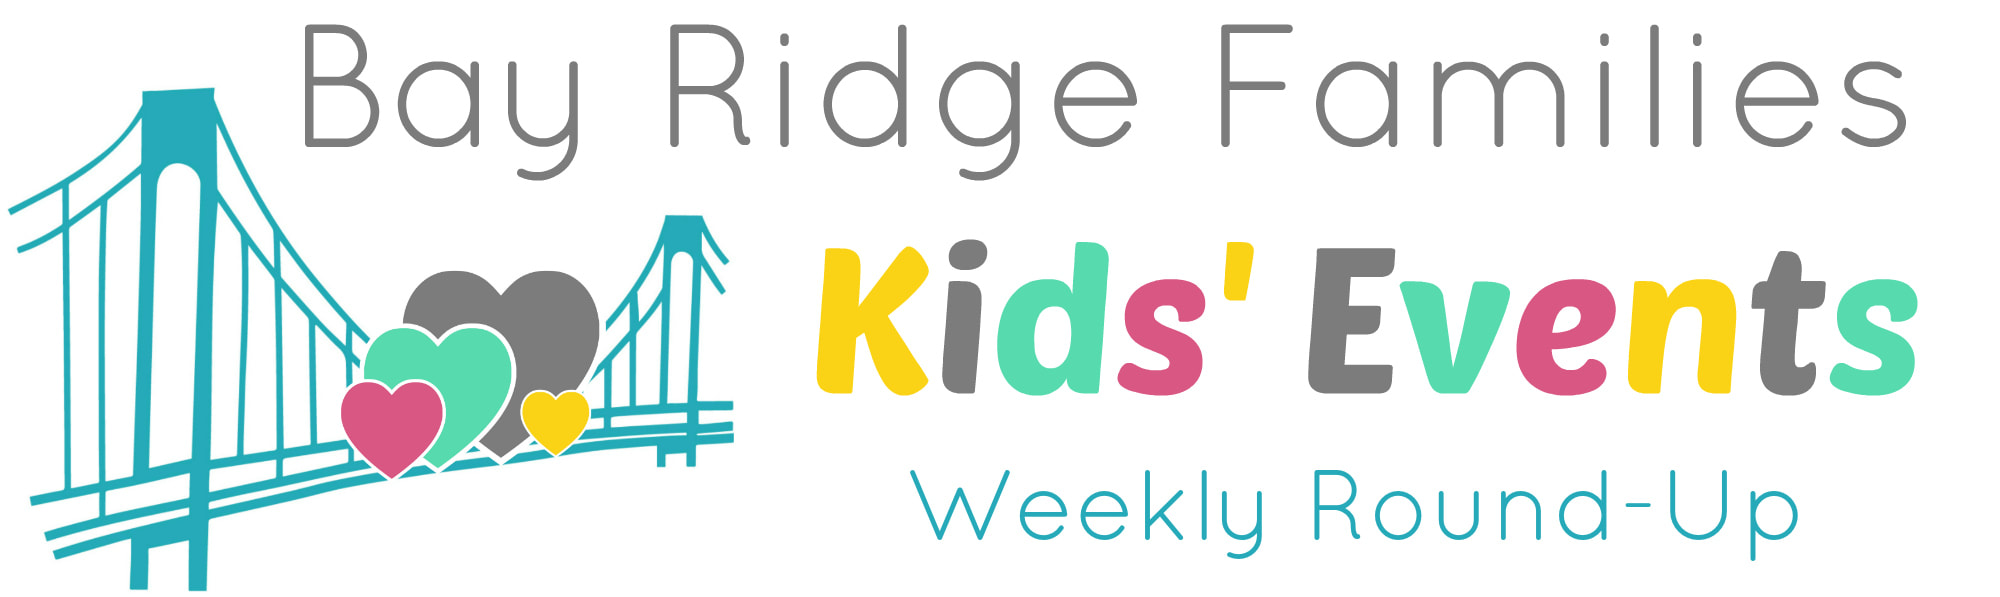 Bay Ridge Families' weekly kids events roundup for October 19 - 25, 2017